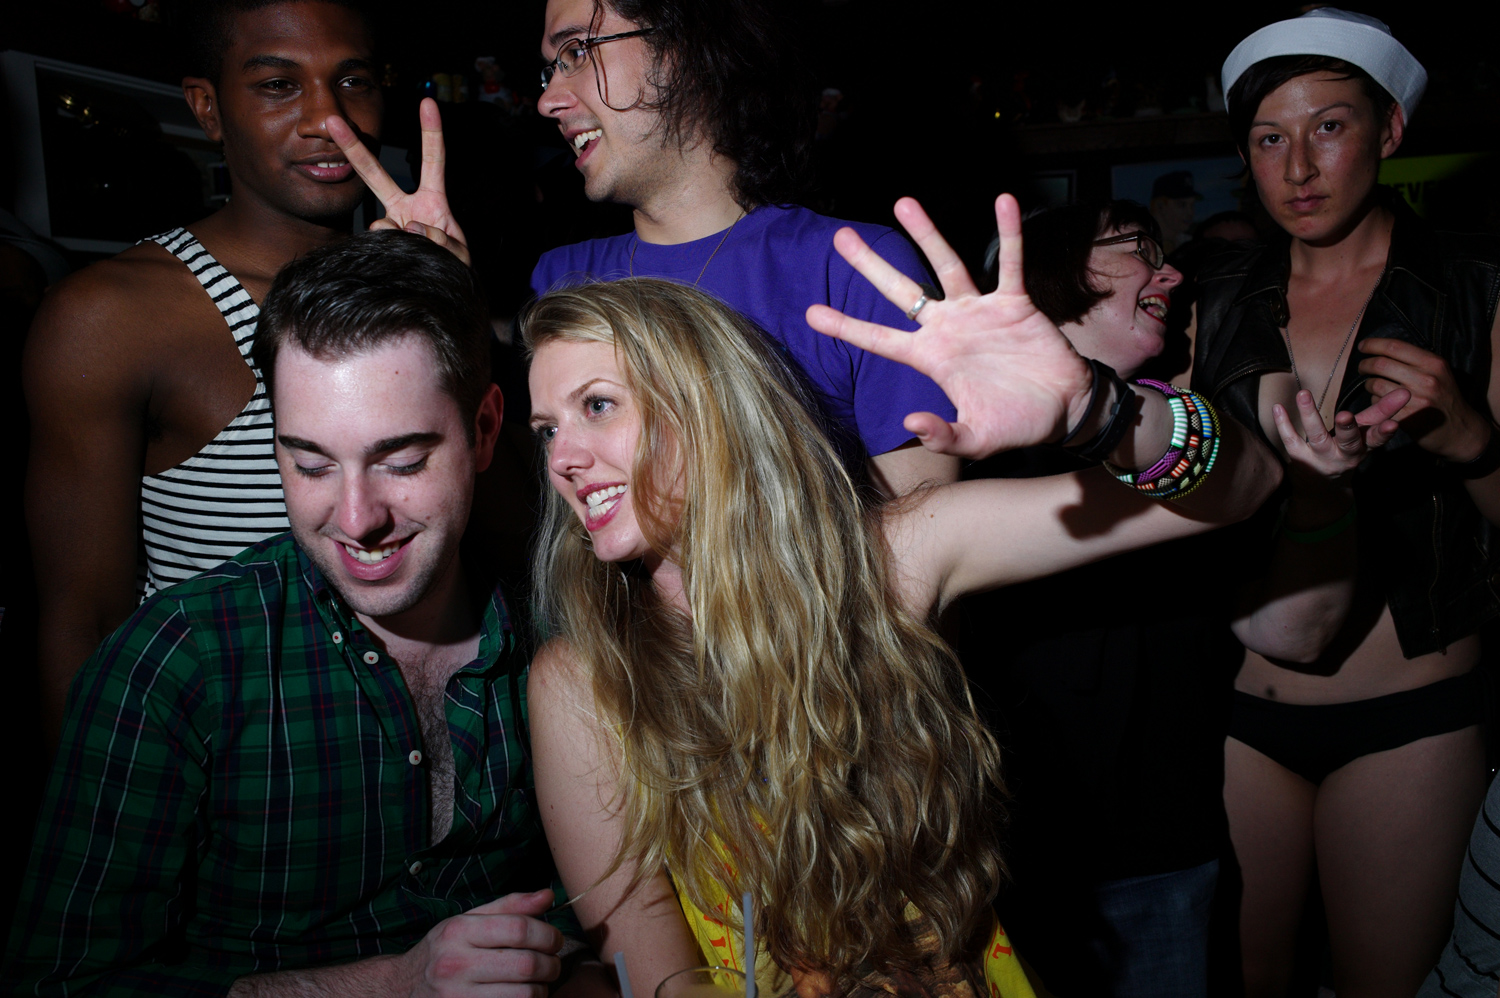 People celebrated the legislation late into the night at various spots around New York, including here, at the Spotted Pig in the West Village, June 26, 2011.